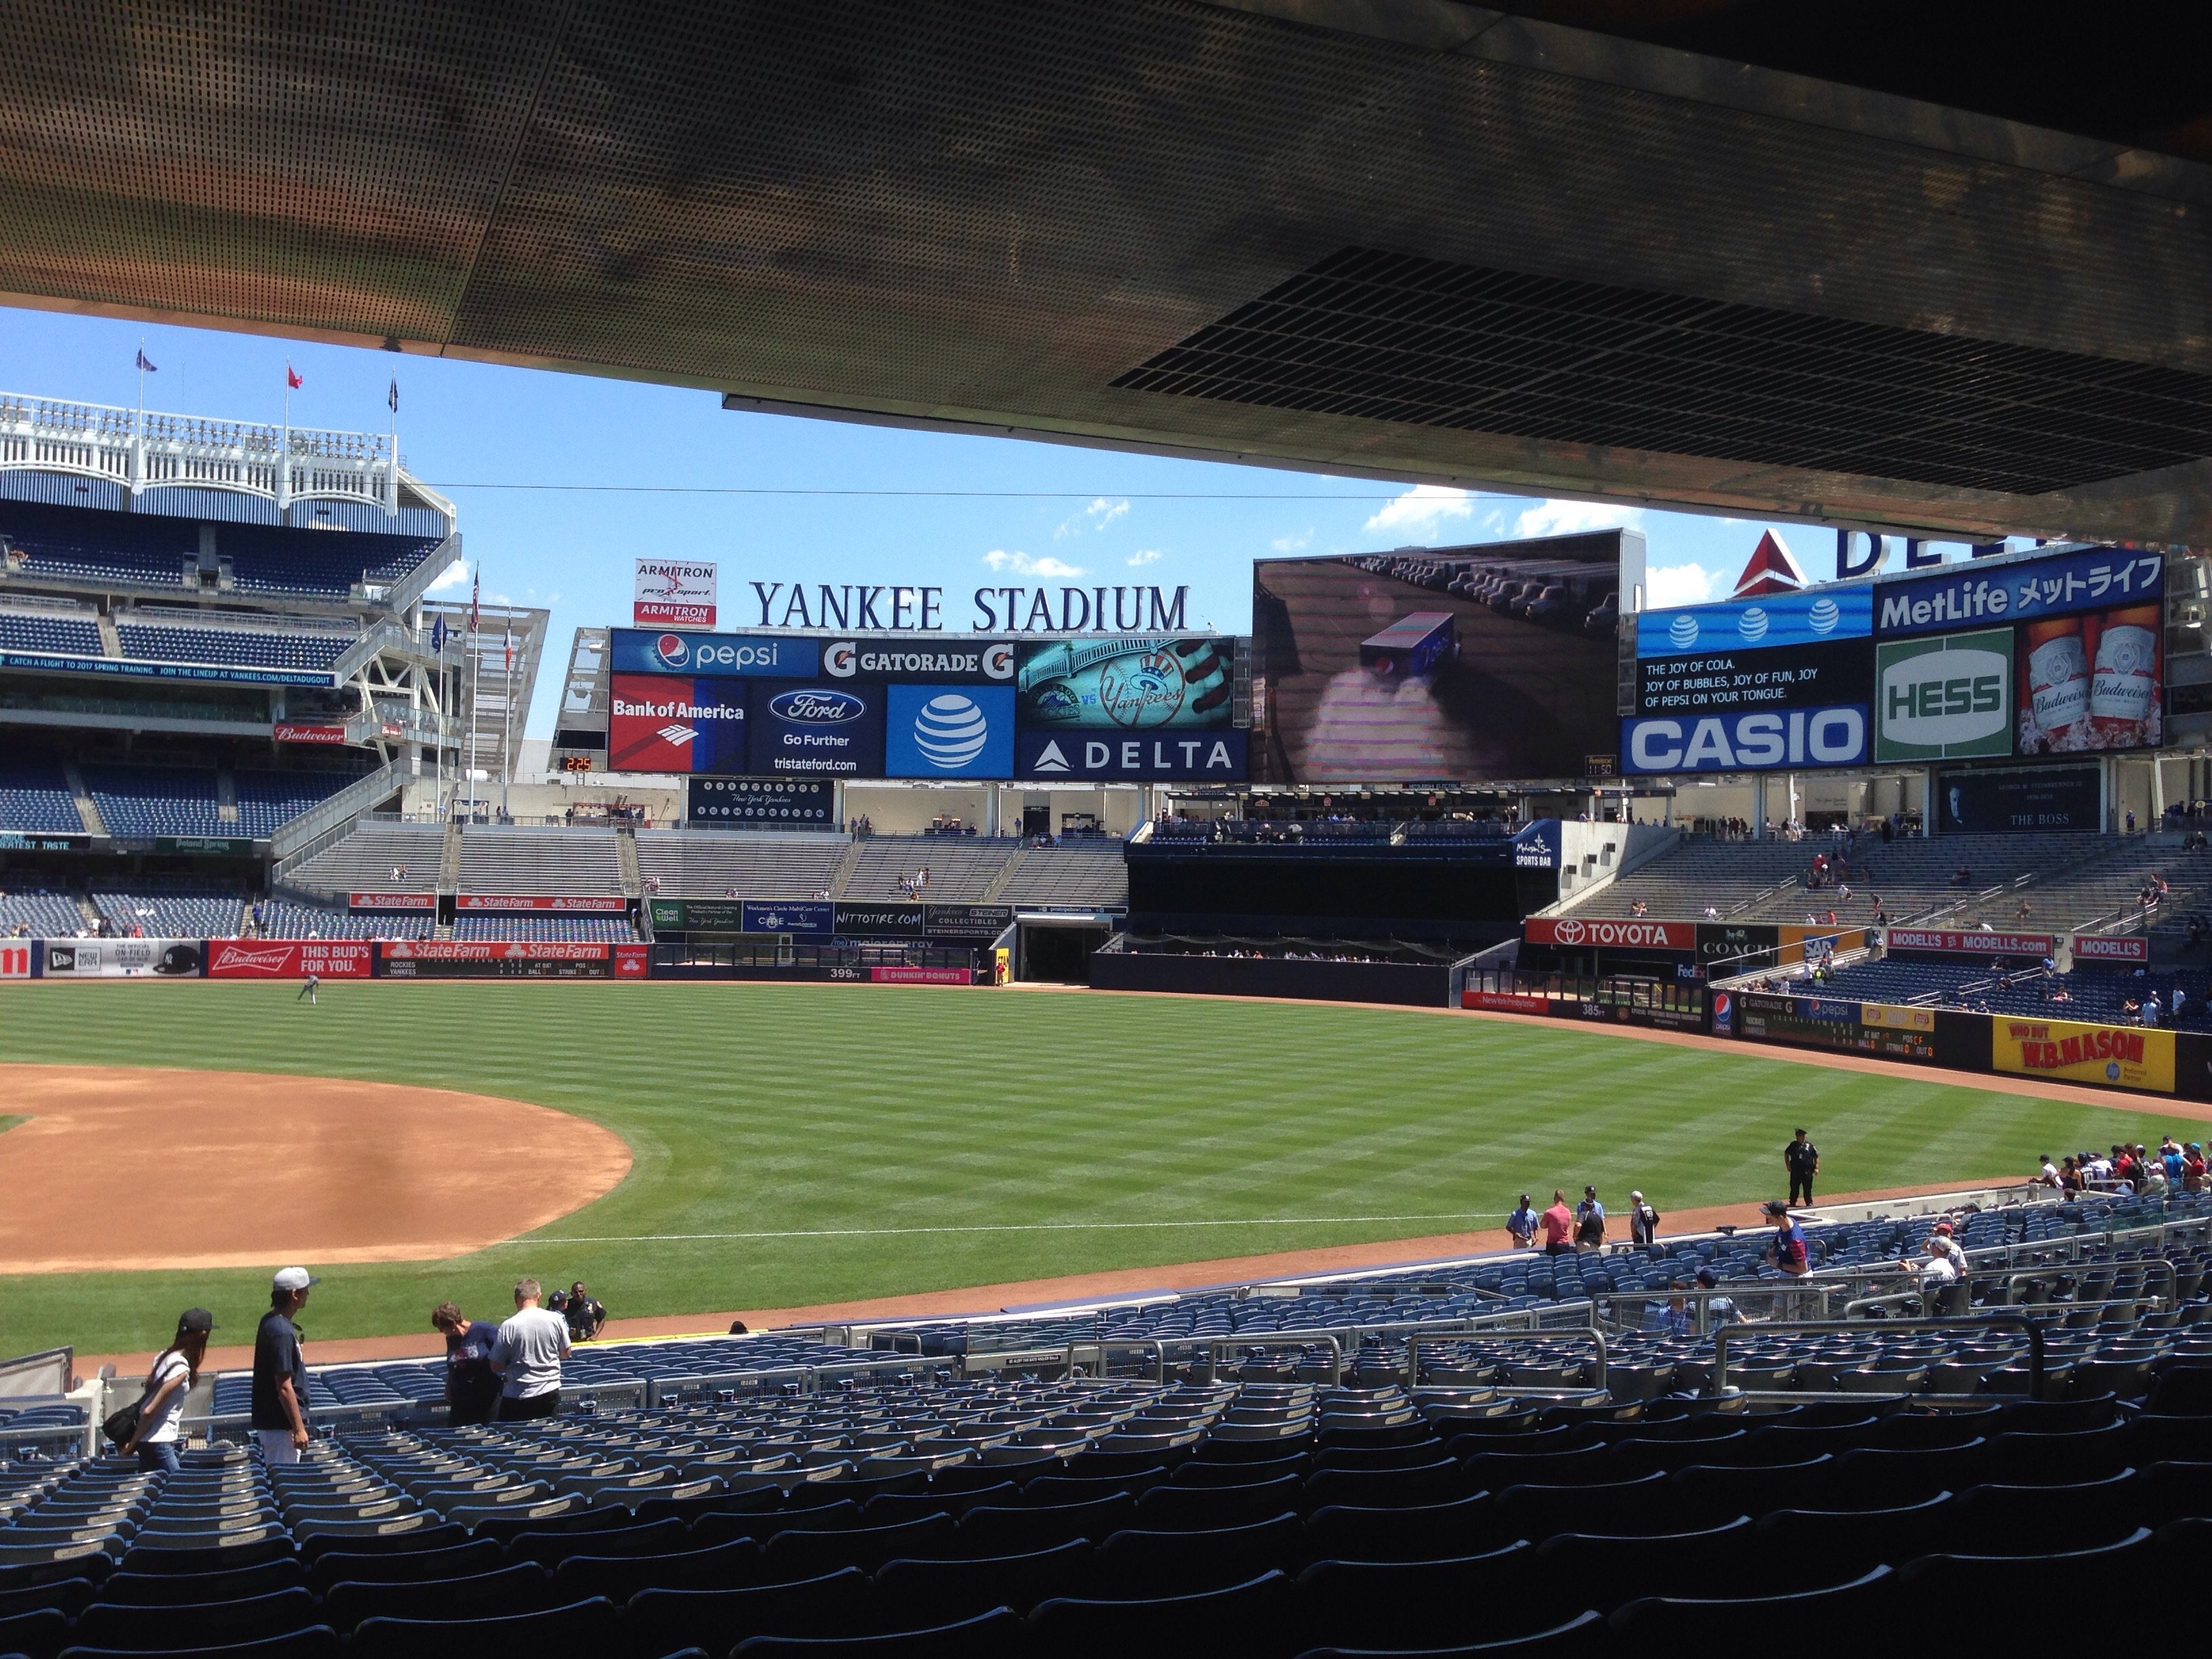 New York Yankees Seat View for Yankee Stadium Section 114B, Row 18, Seat 12